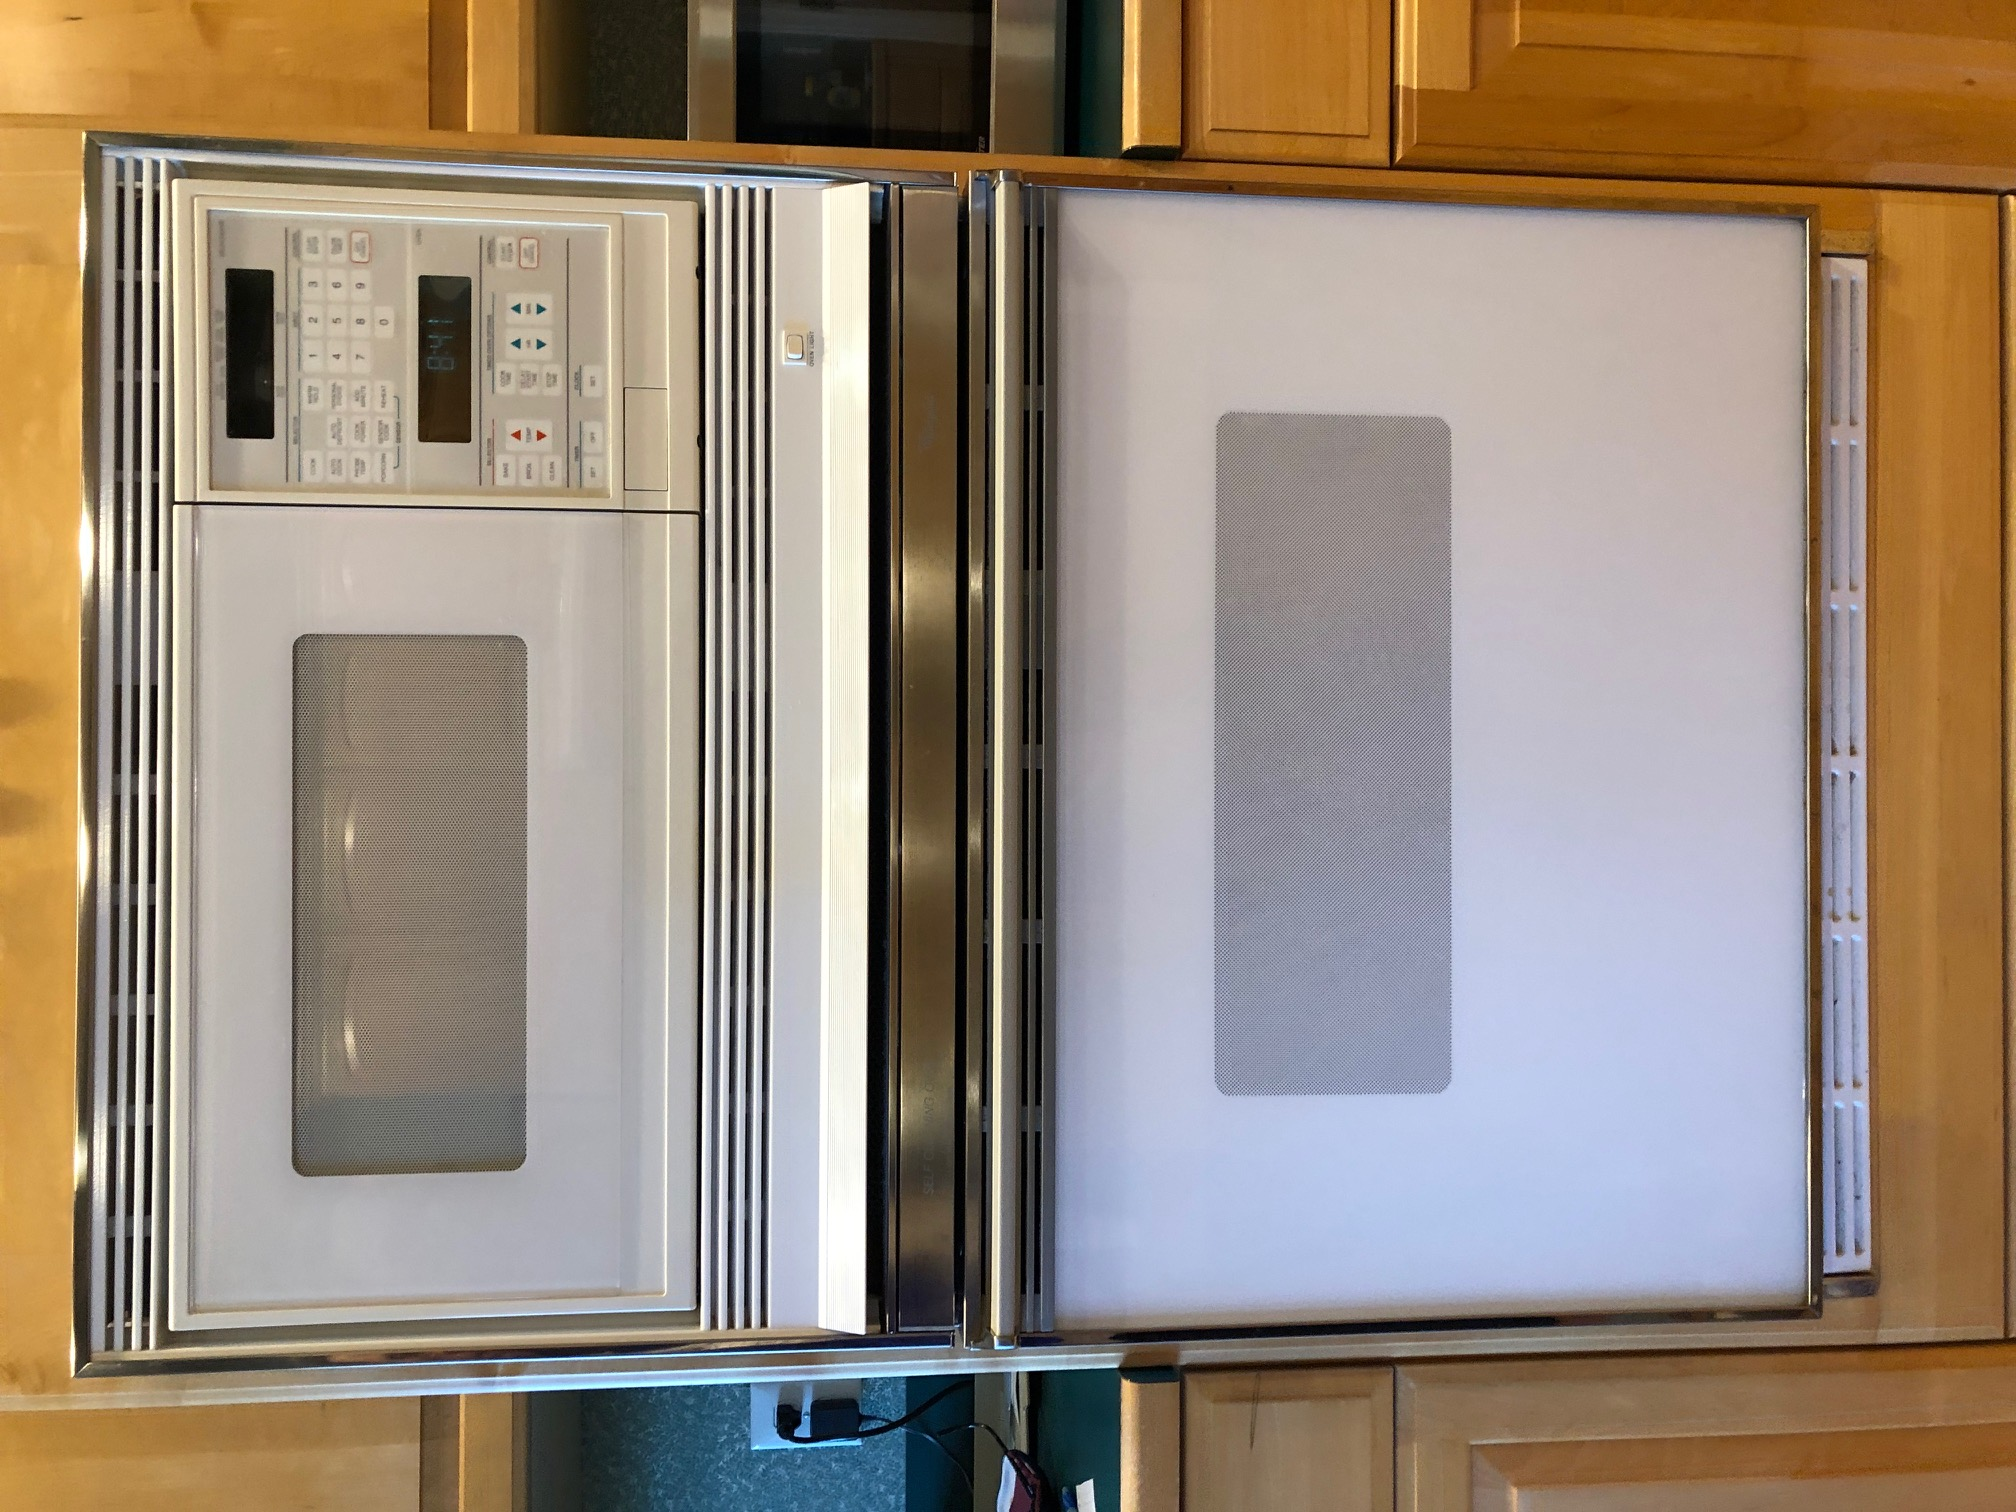 Built in combo microwave/oven problem-img_5813.jpg